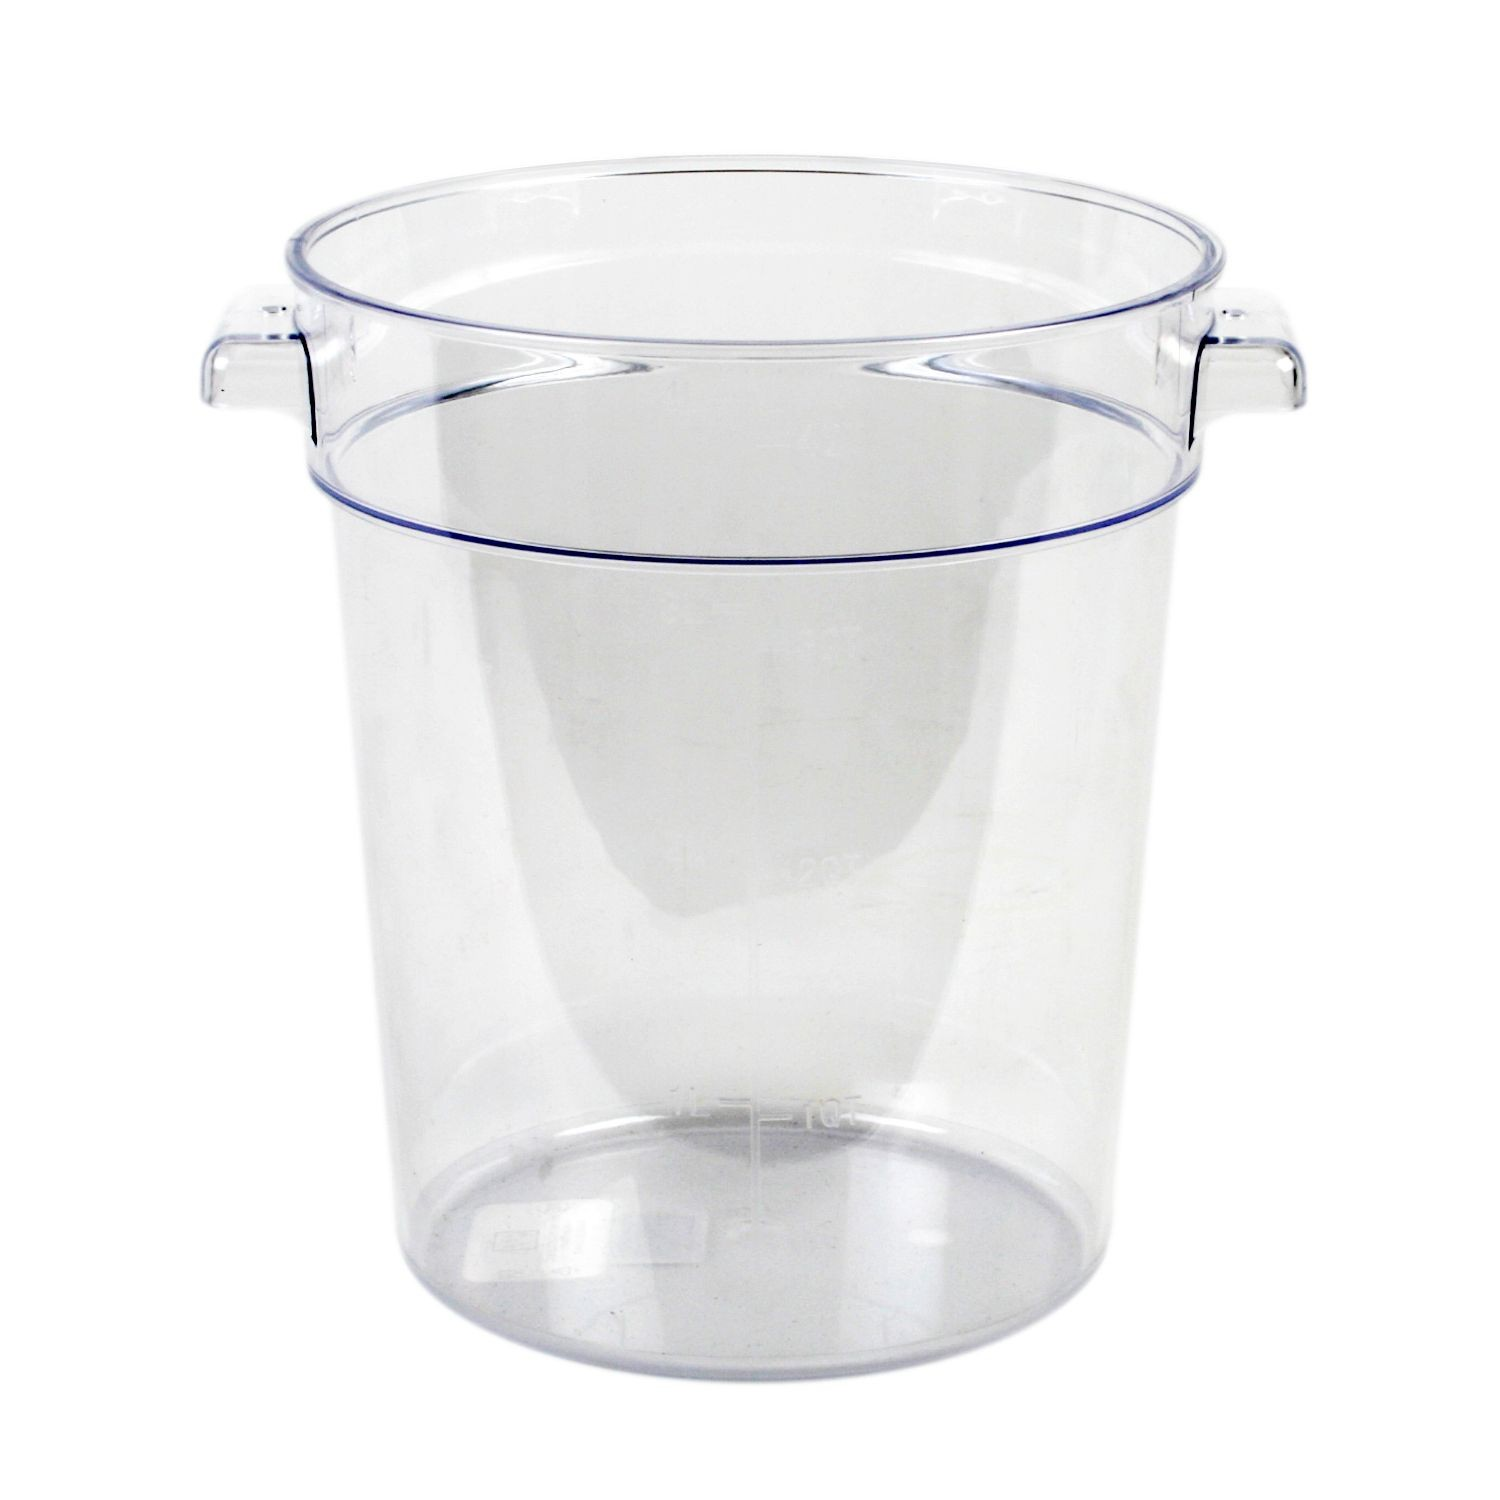 Thunder Group PLRFT004PC Food Storage Container 4 Qt. - 1 doz